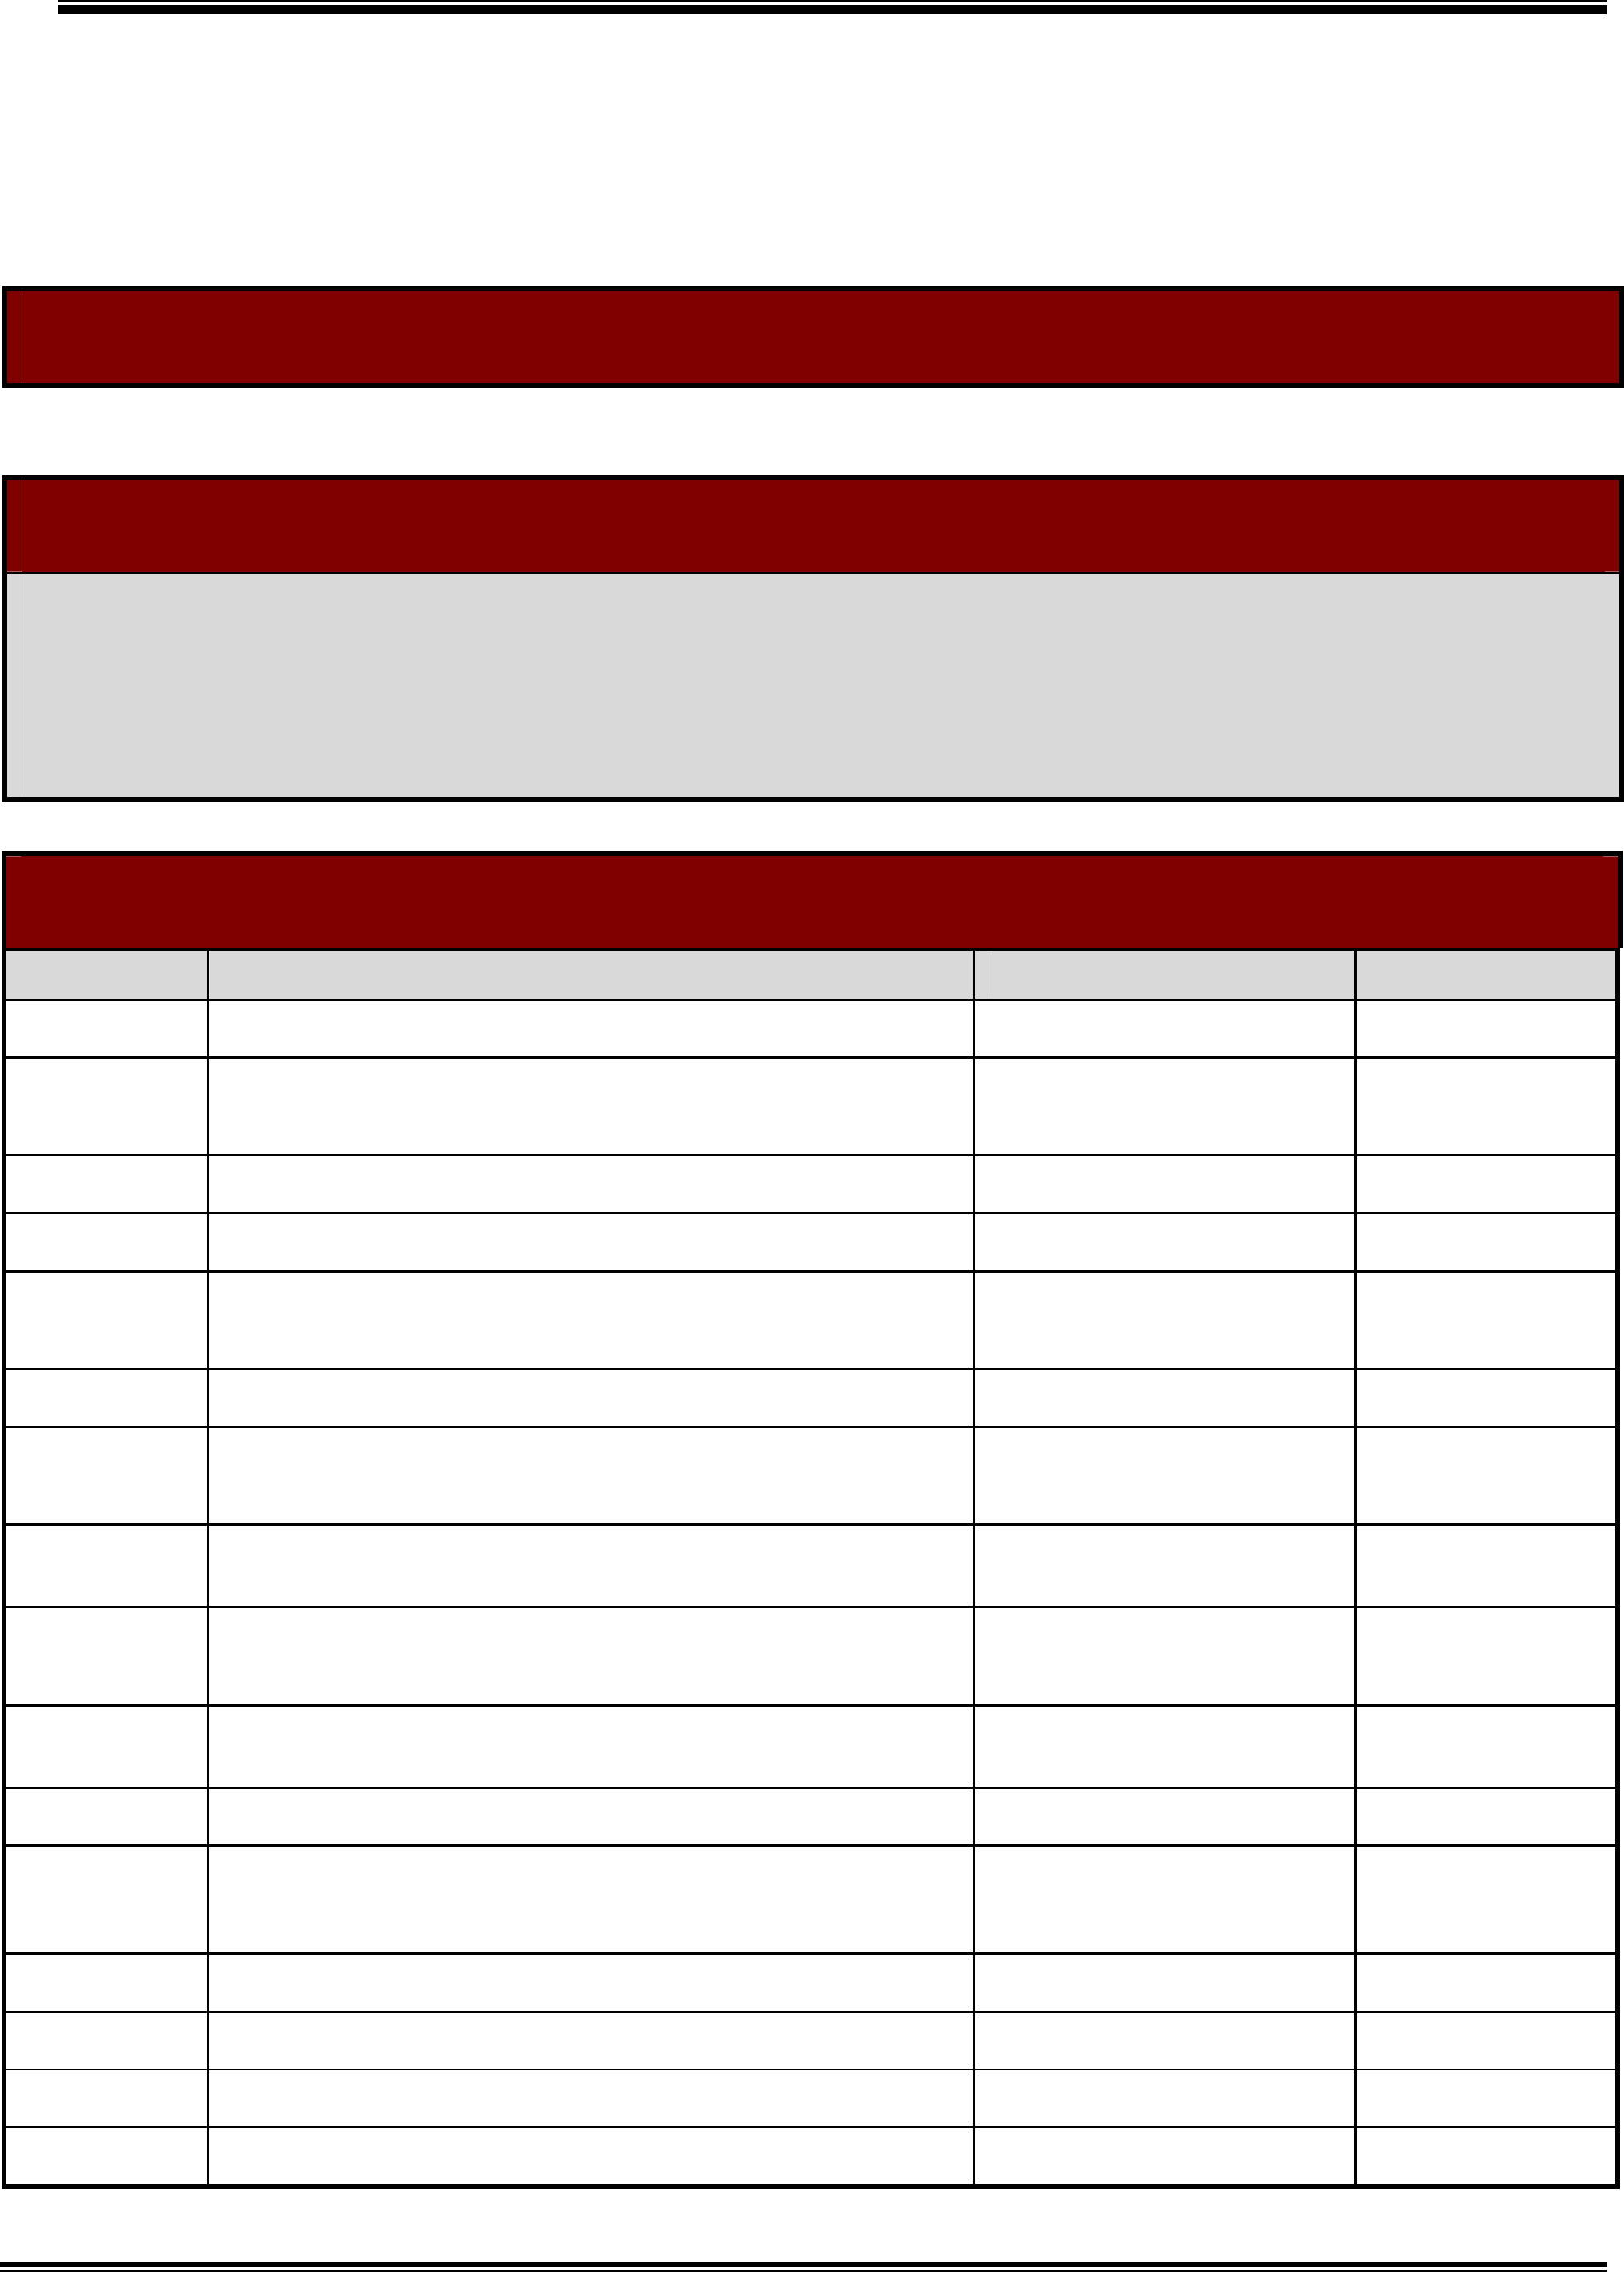 Event Schedule Template Word from www.formsbirds.com